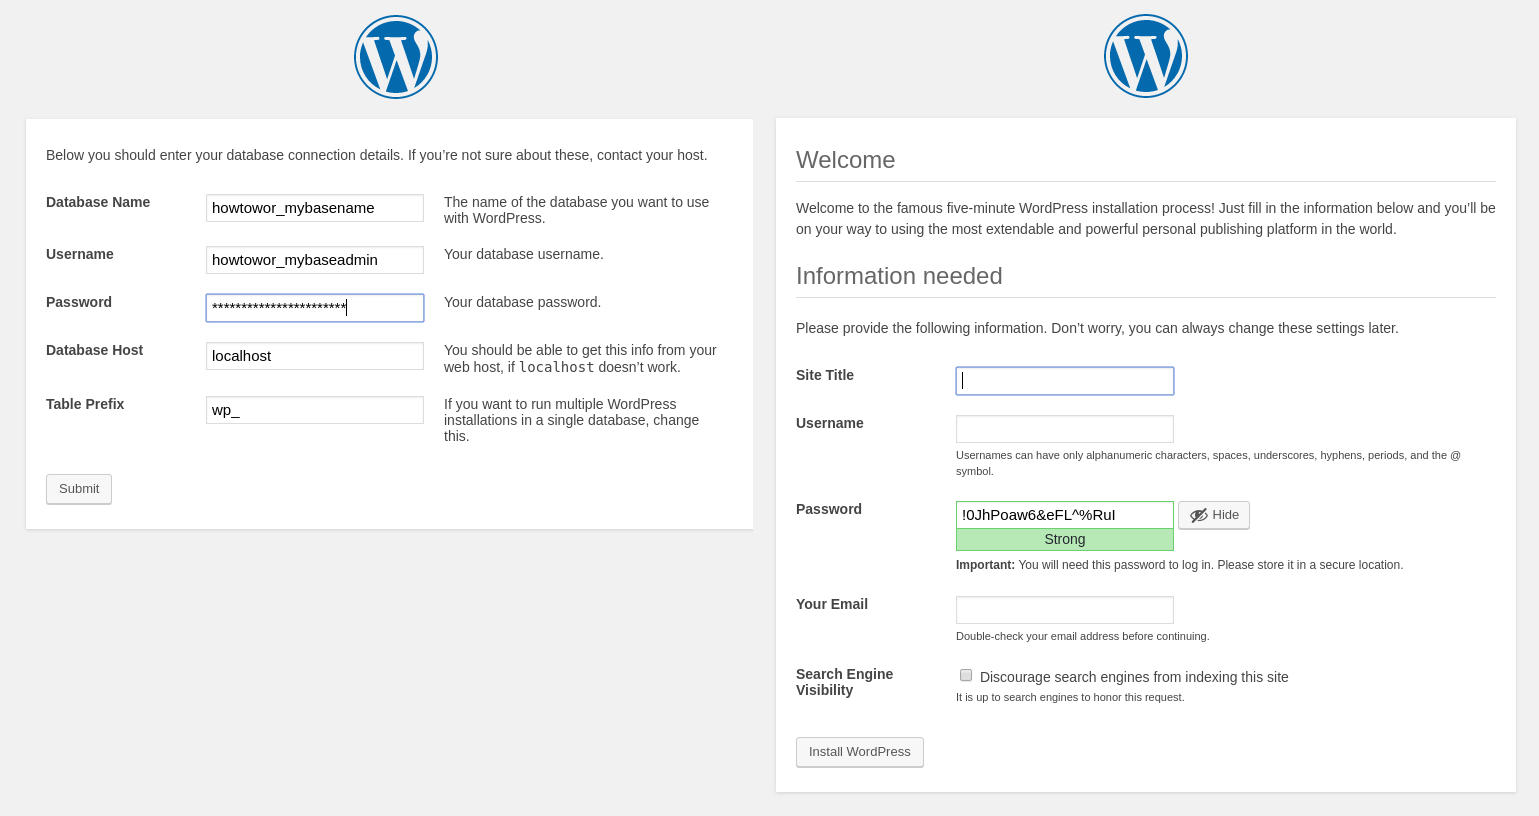 WordPress installation user interface